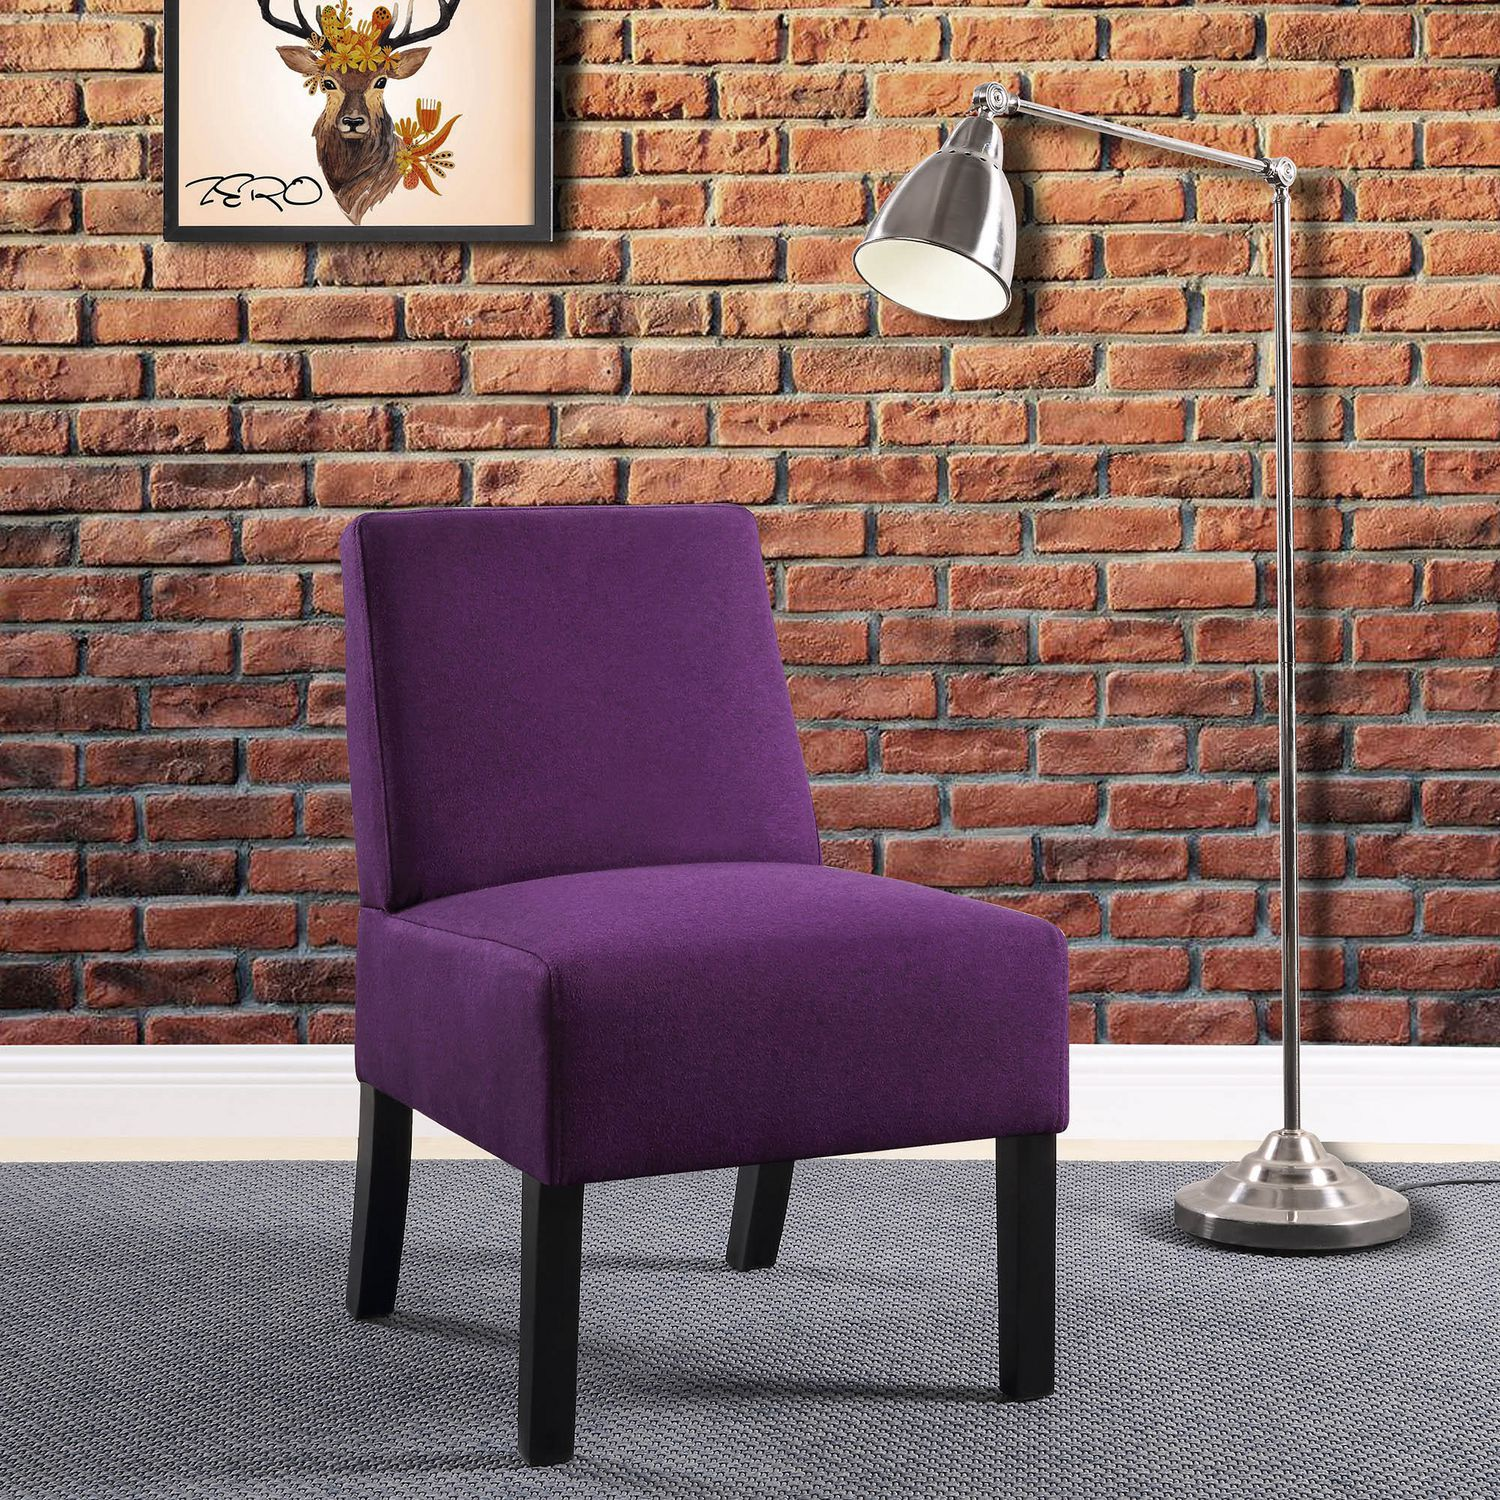 Purple Accent Chair Worldwide Homefurnishings Inc Compact Accent Chair Purple